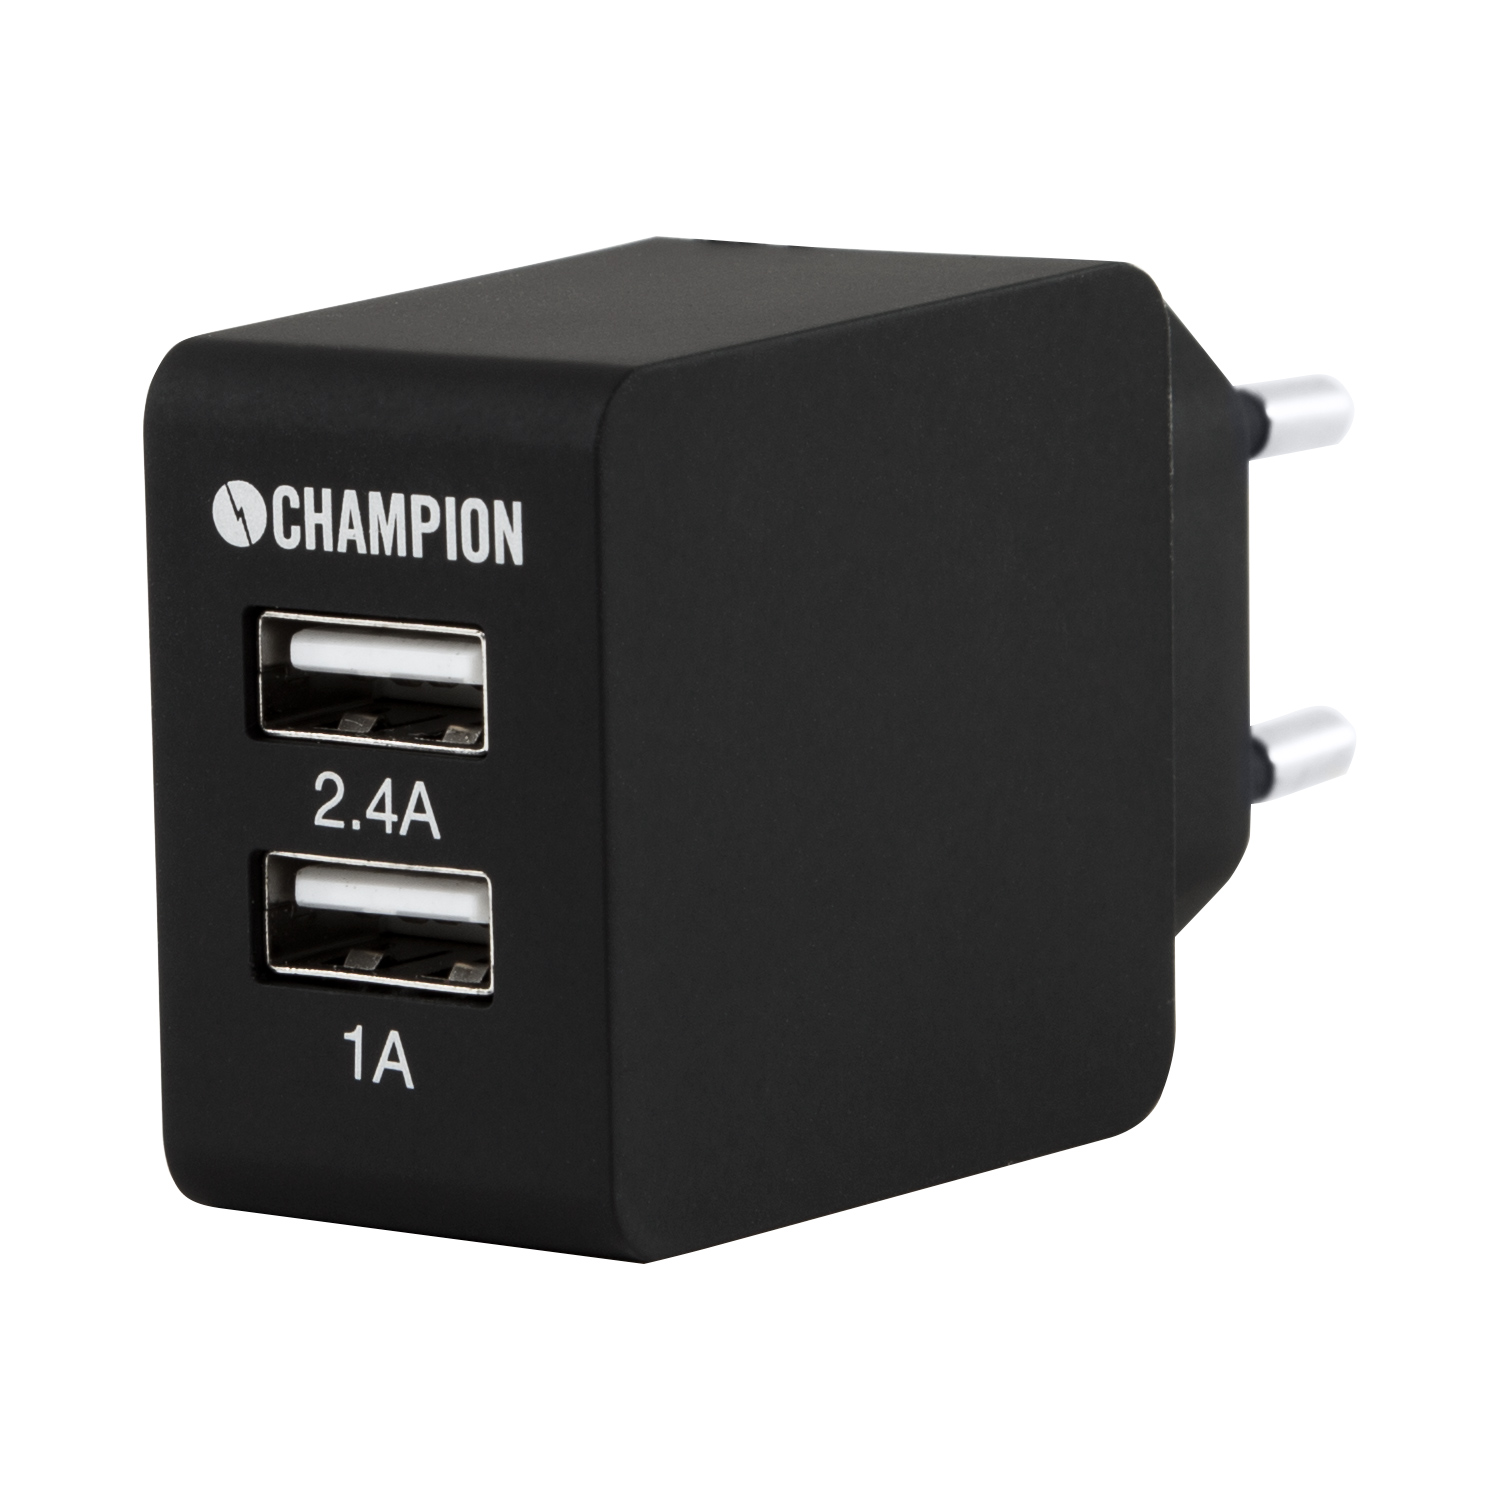 Champion Dual USB Laddare 230V 3.4A Sva